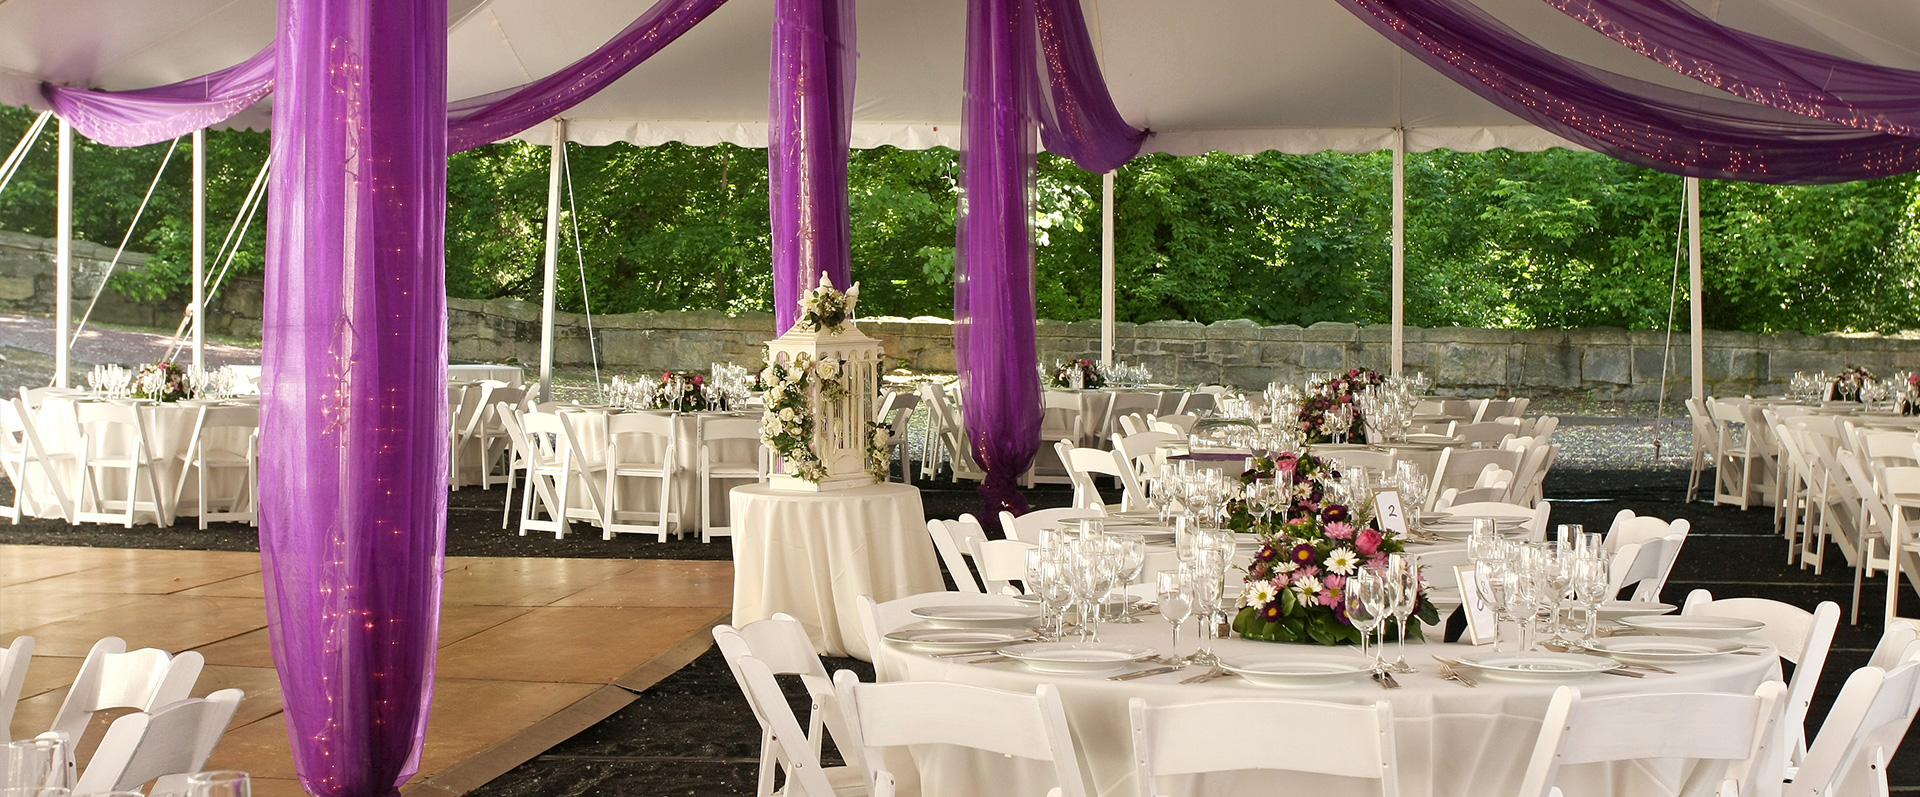 Tent And Chair Rentals Large Tents For Weddings And 20x40 Pole Tent